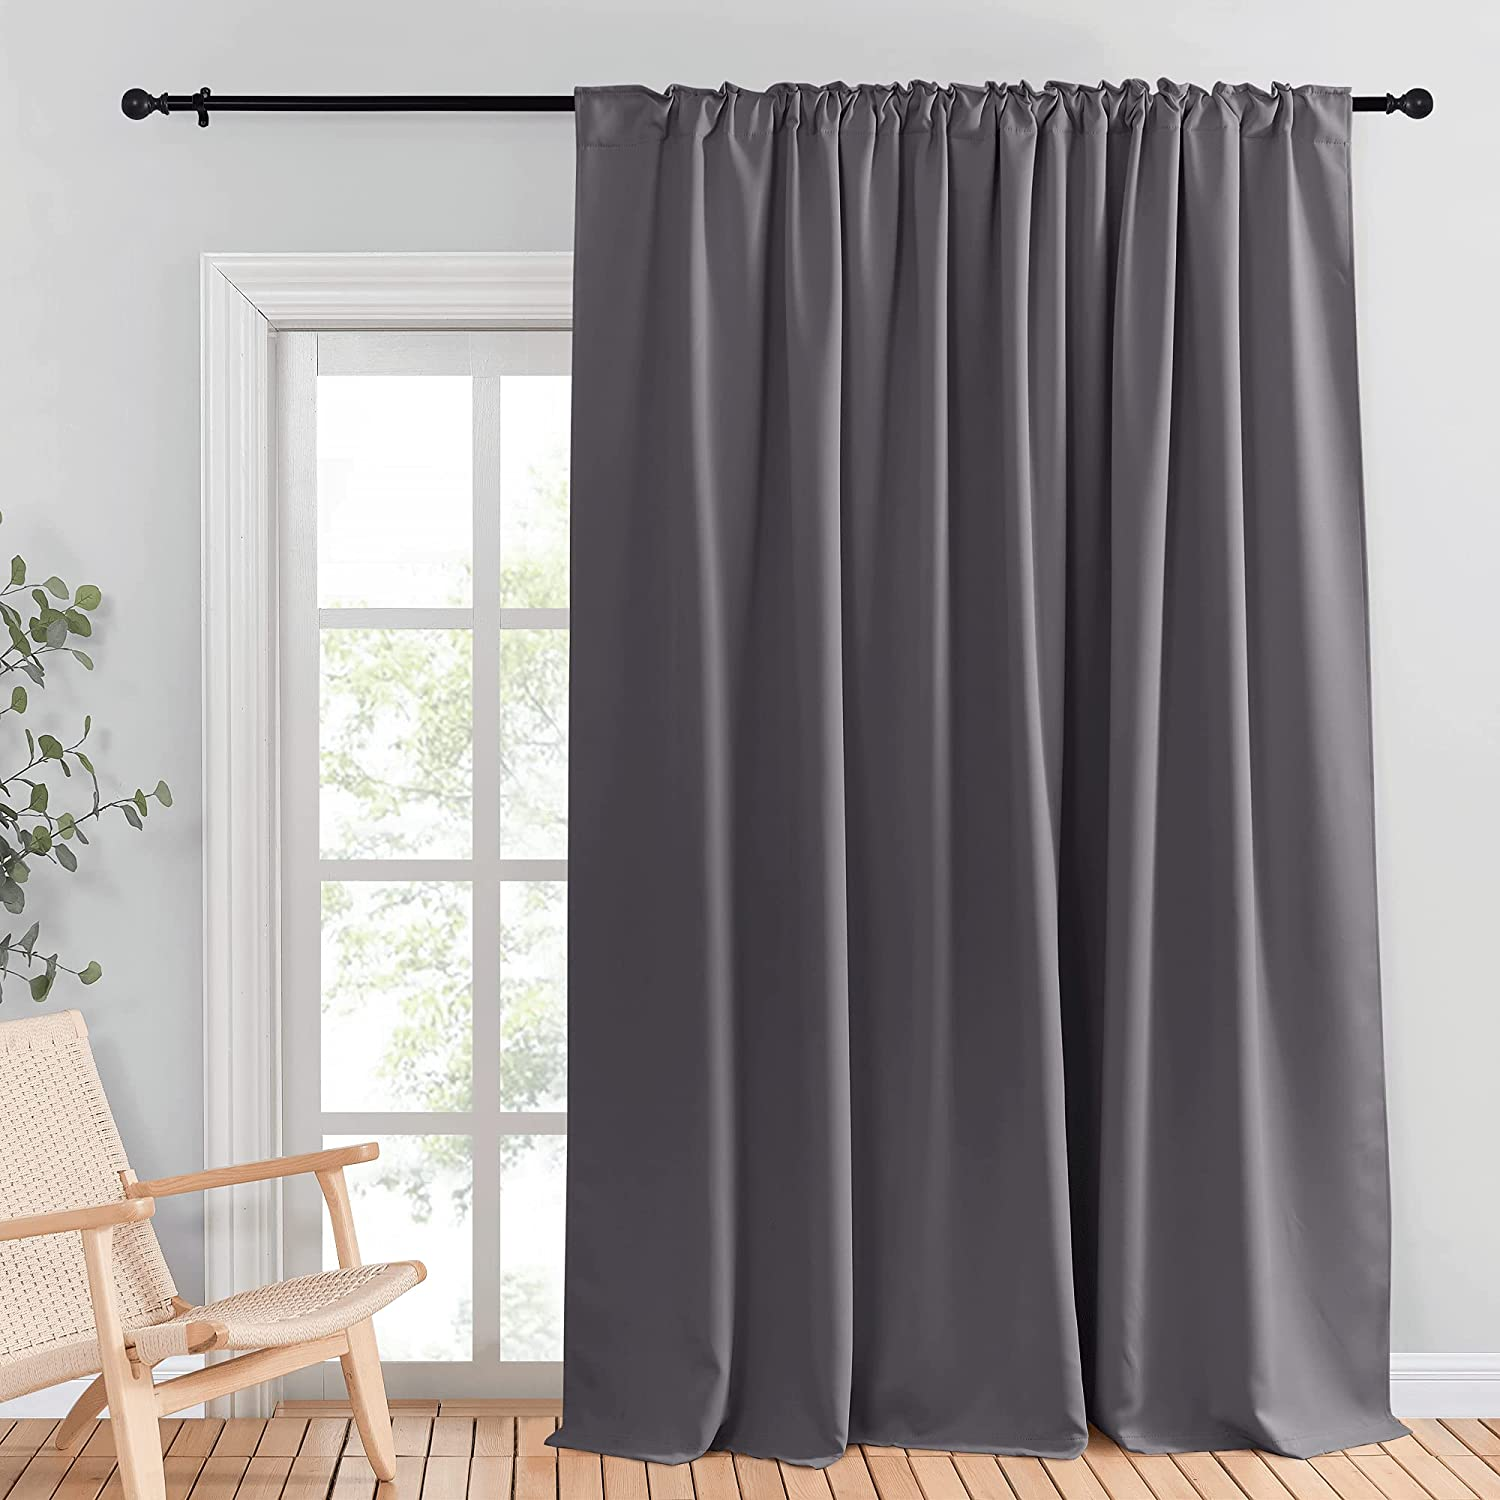 Amazon Com Nicetown Patio Sliding Glass Door Curtain Wide Blackout Curtains Keep Warm Draperies Grey Sliding Door Drapes For Closet Bedroom Office Sunroom Backdrop Gray 100 Inches W X 95 Inches L 1